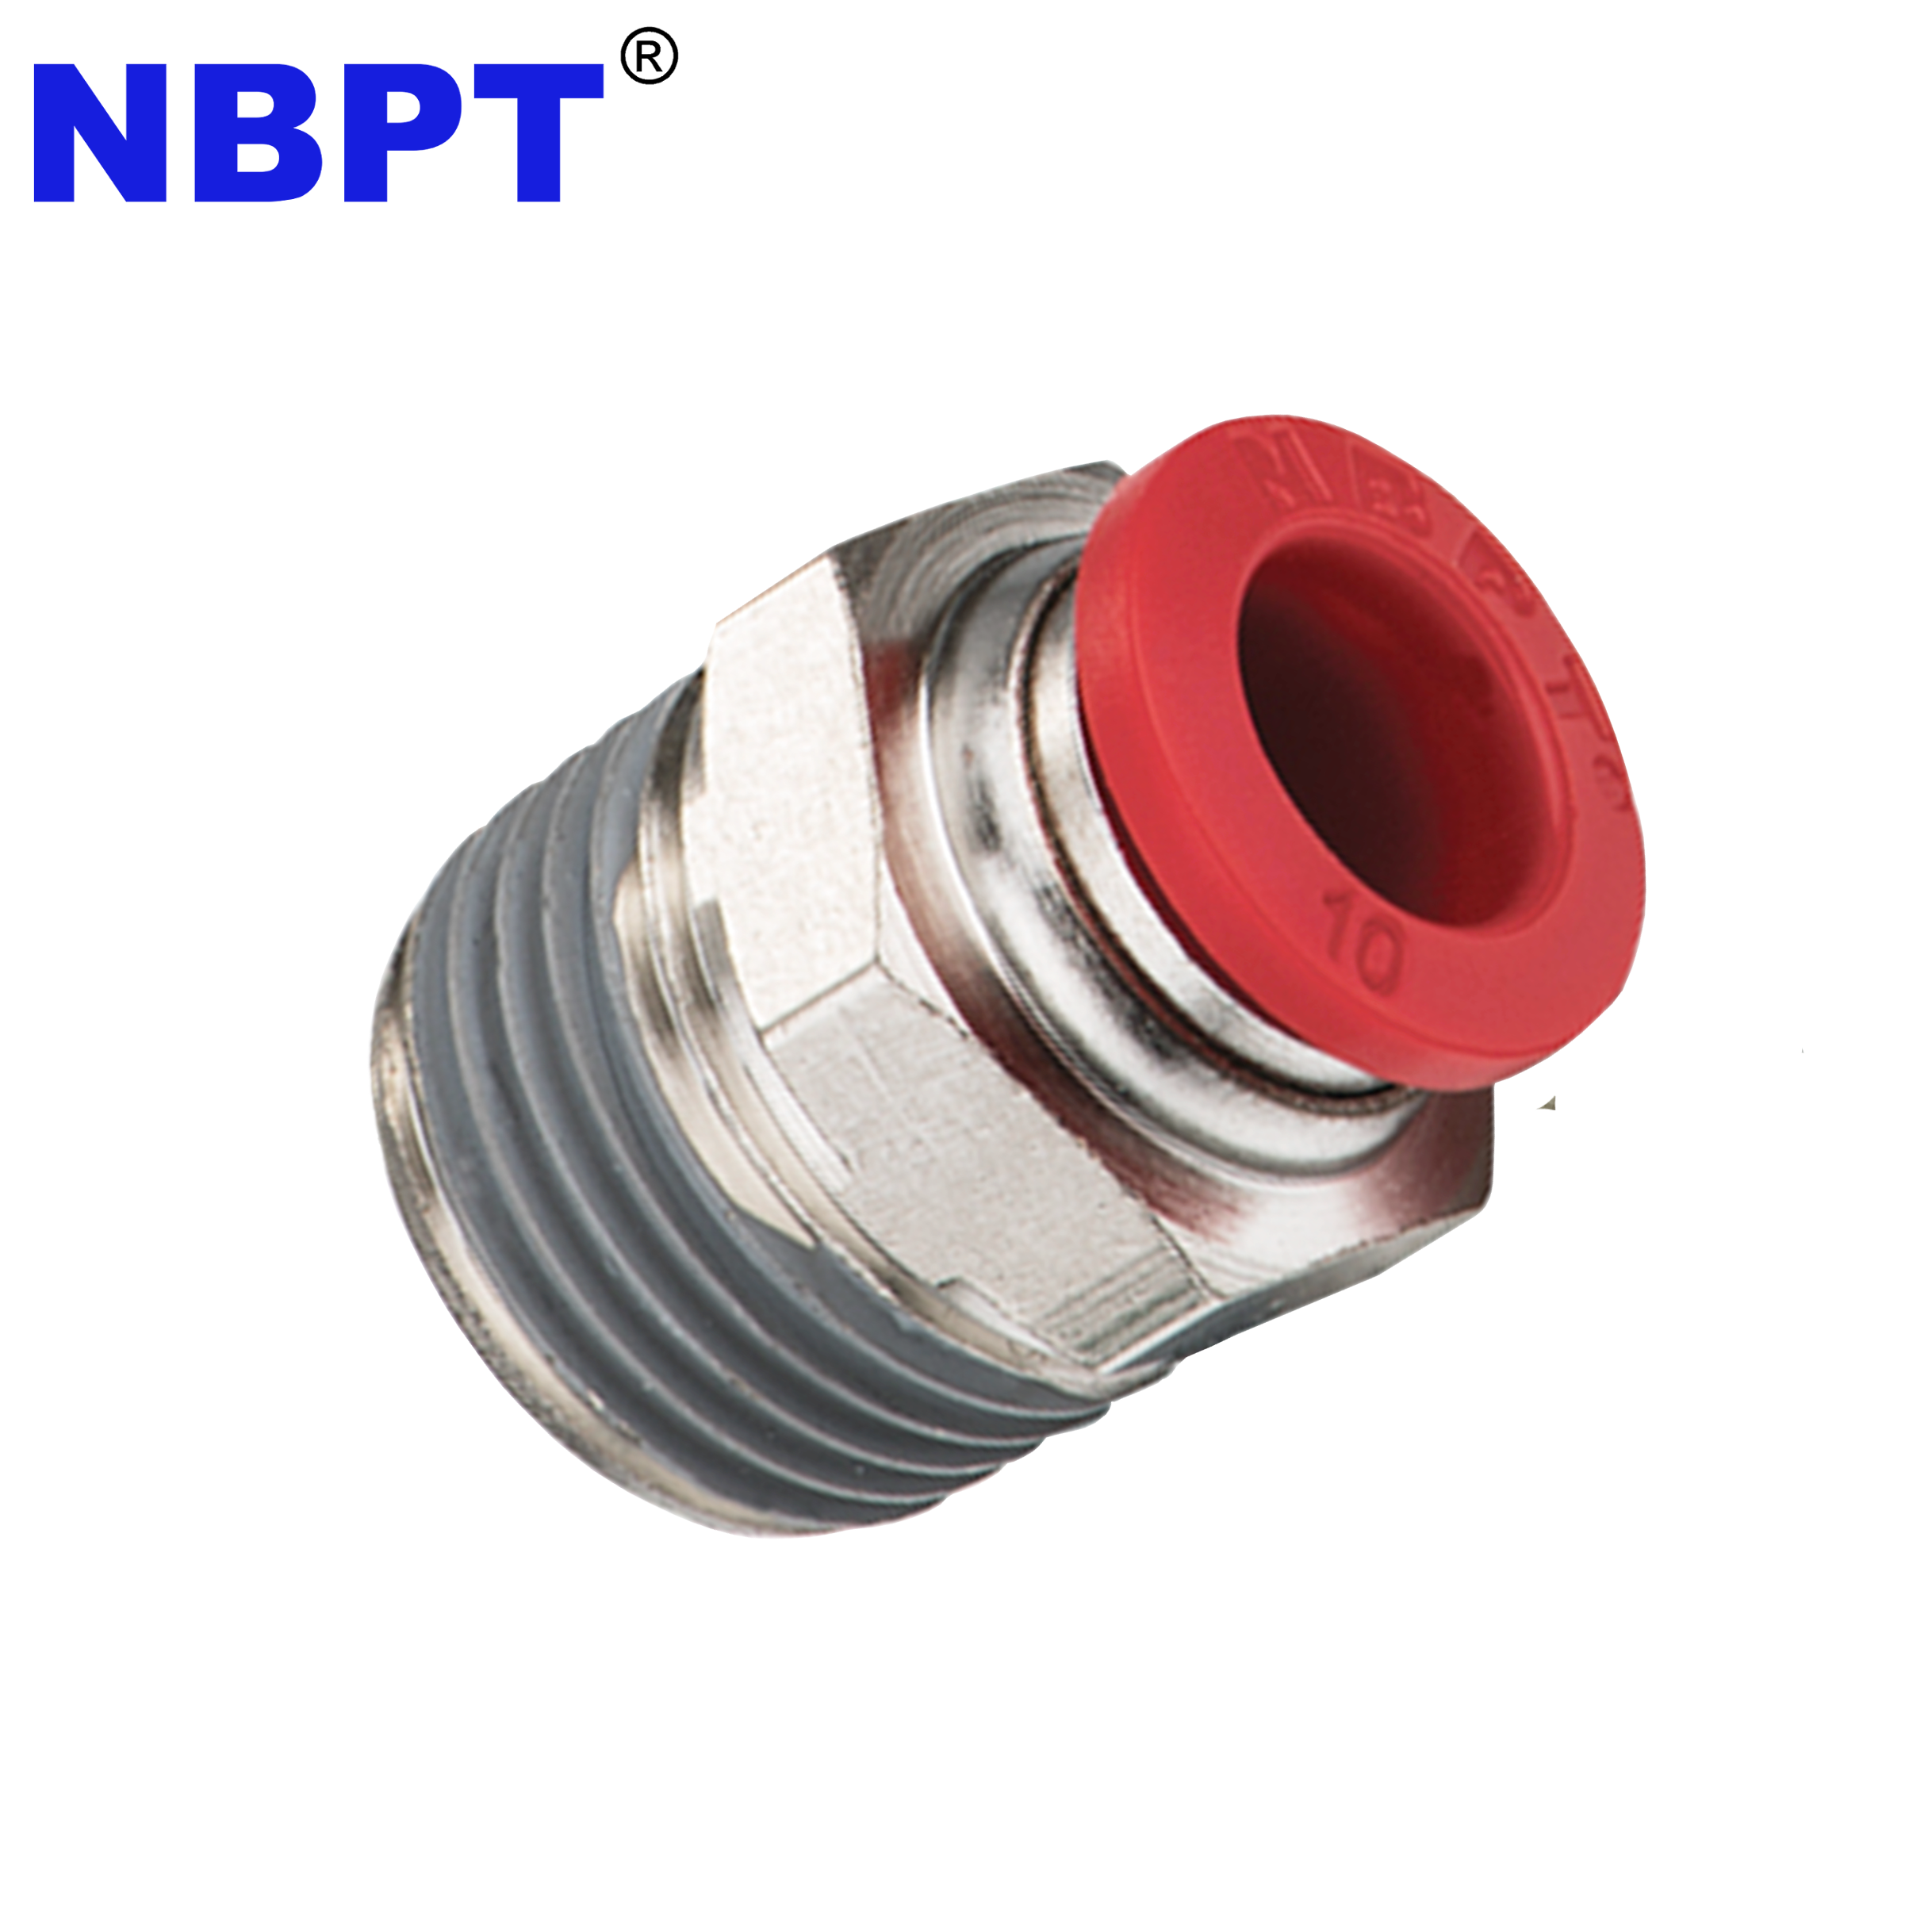 PC Series Male Threaded Straight Connector Air Hose Tube Brass Connector One Touch Push in Fittings